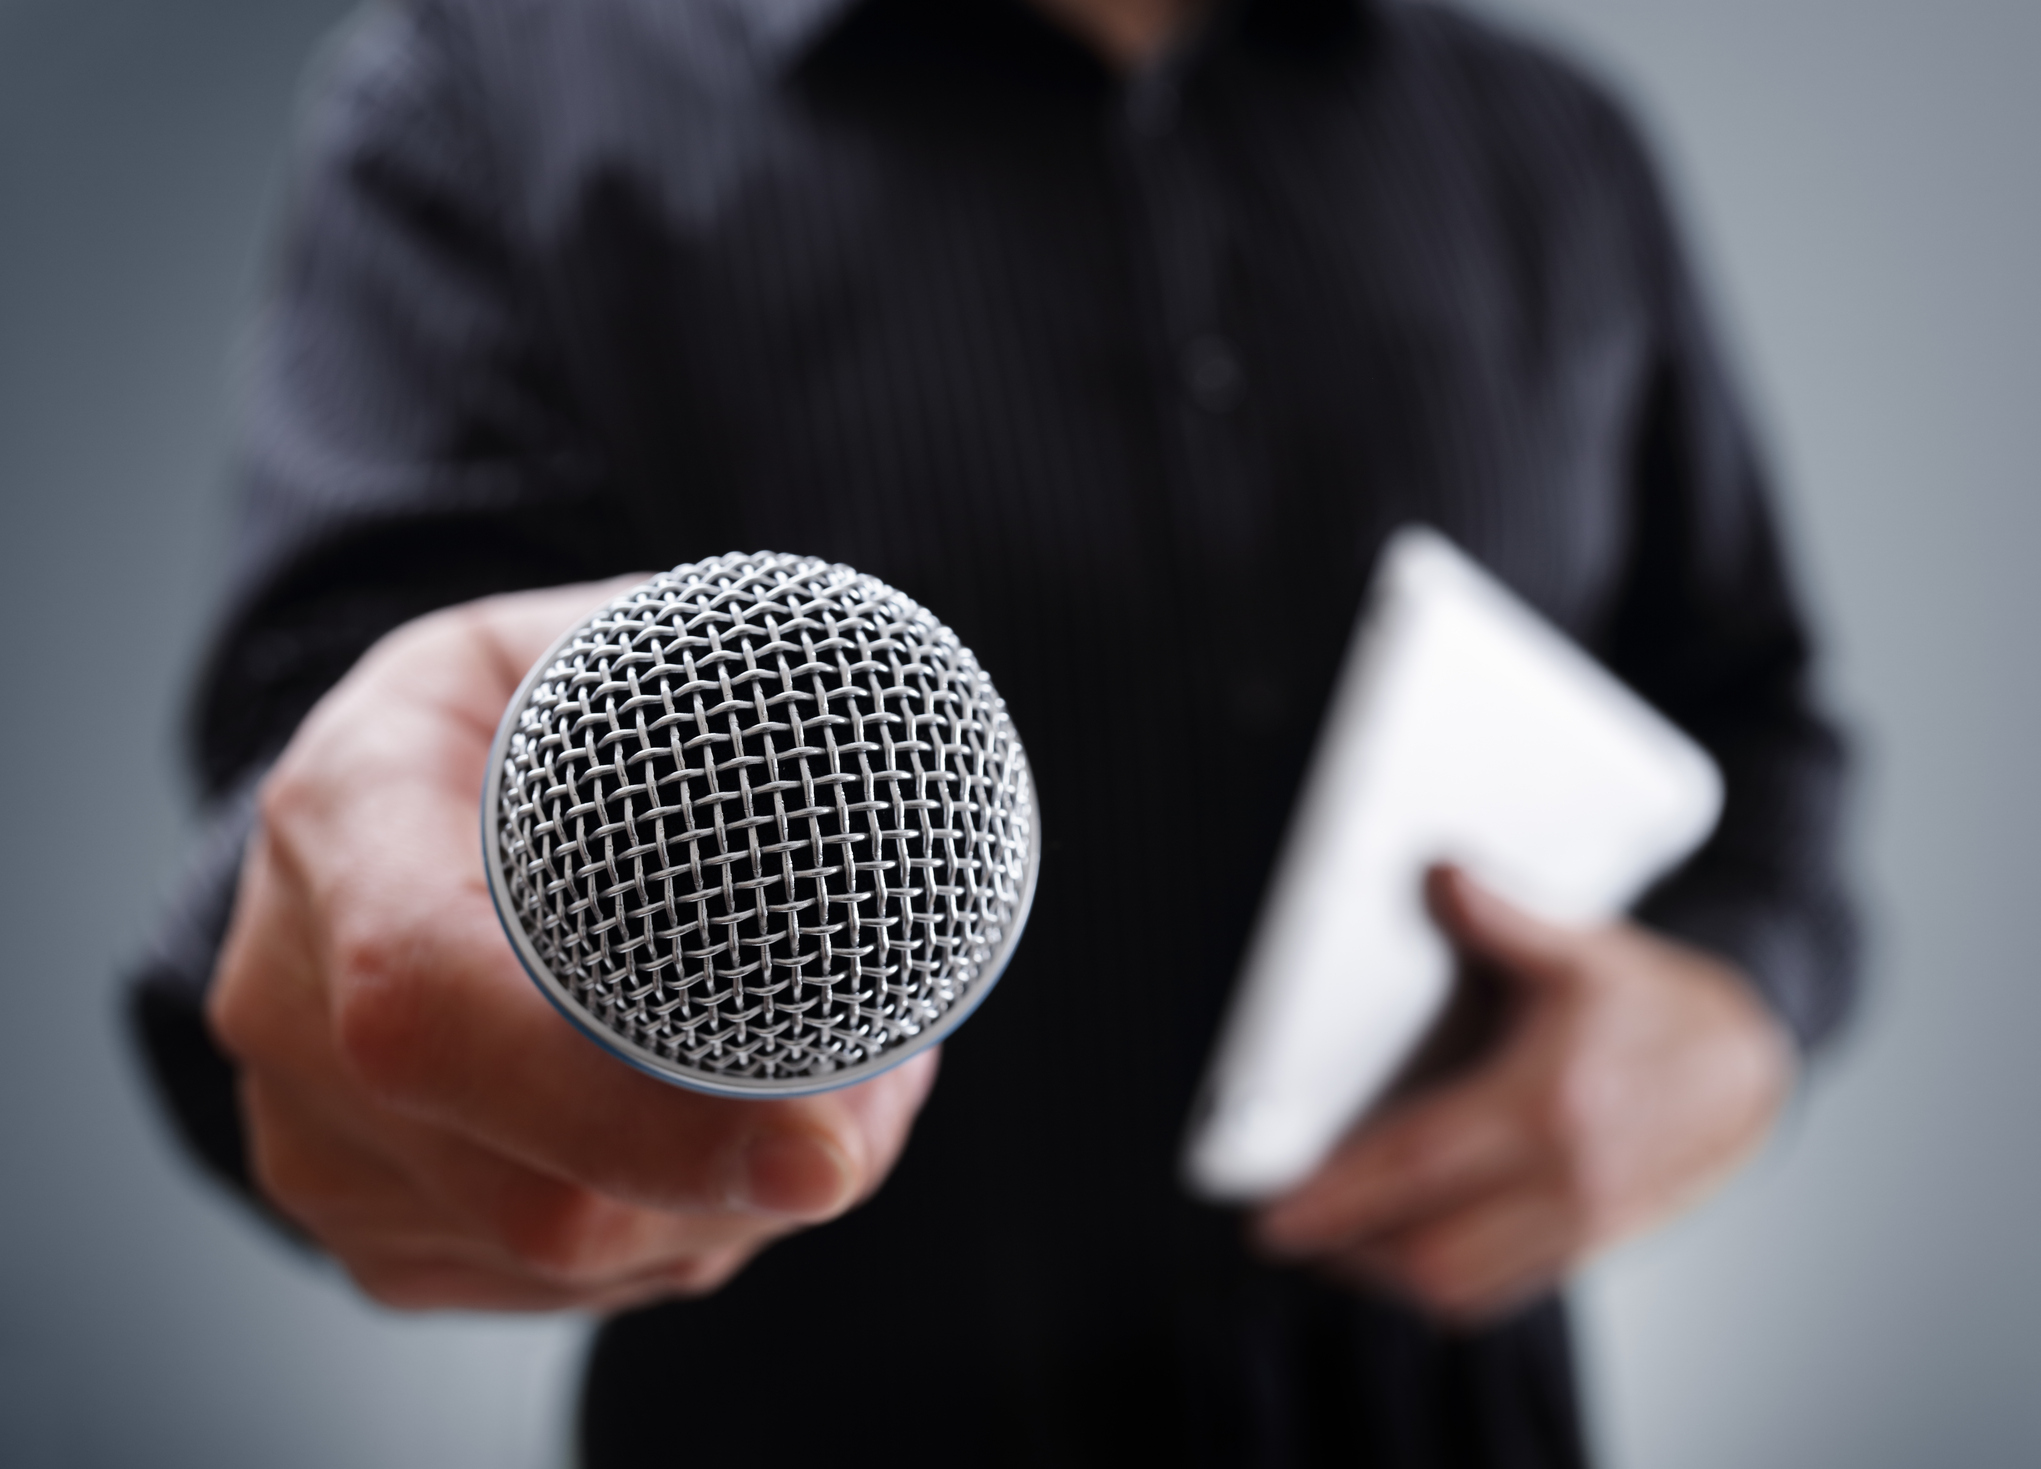 Interview-with-microphone-511014724_2045x1471.jpeg